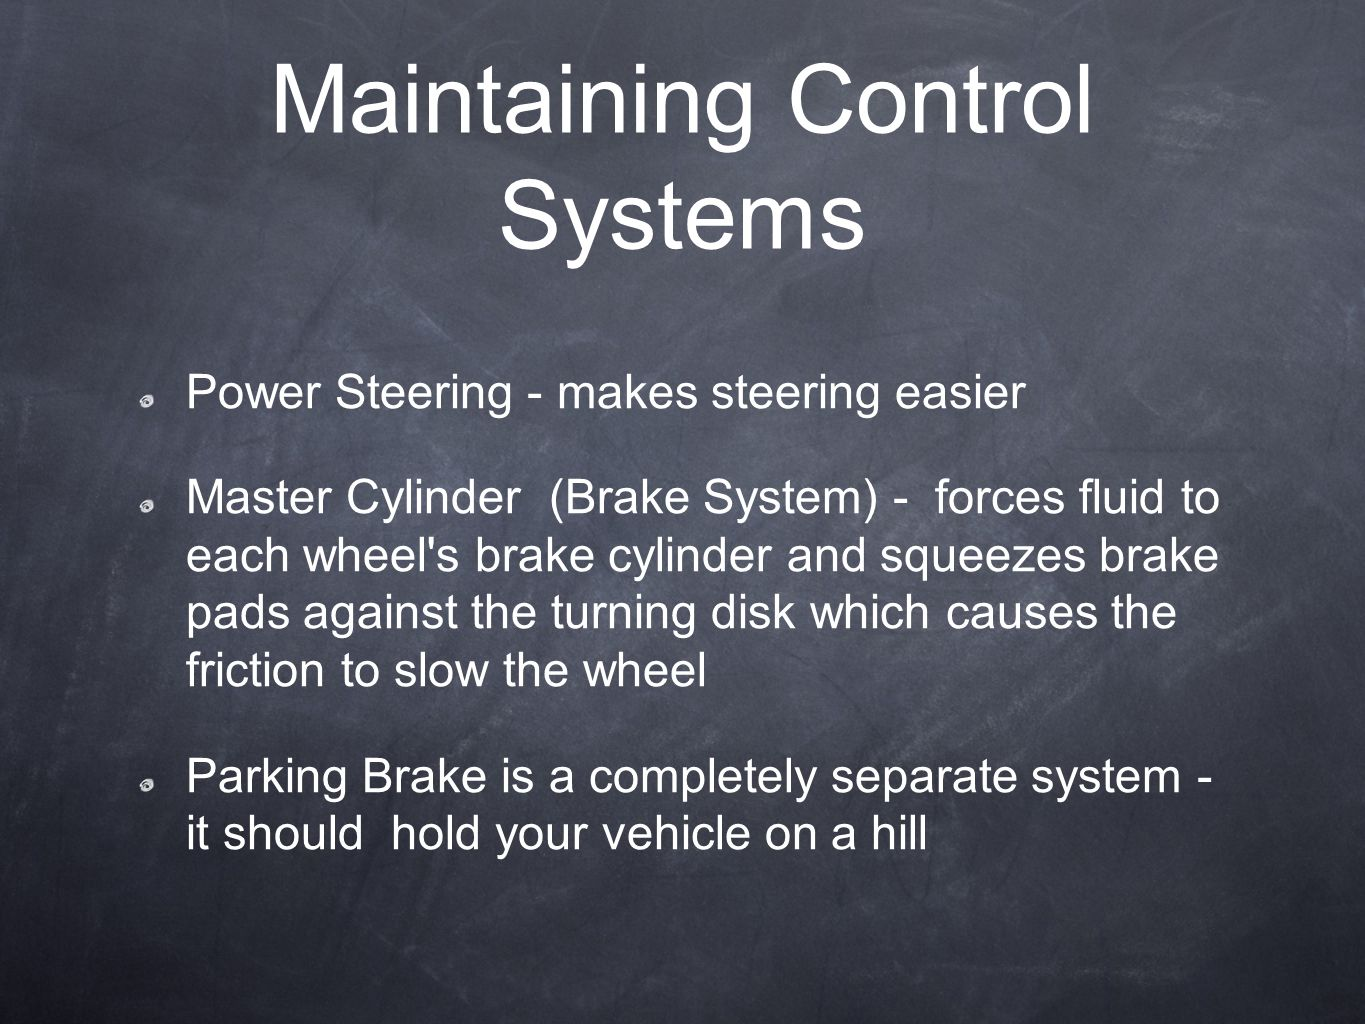 Maintaining Control Systems